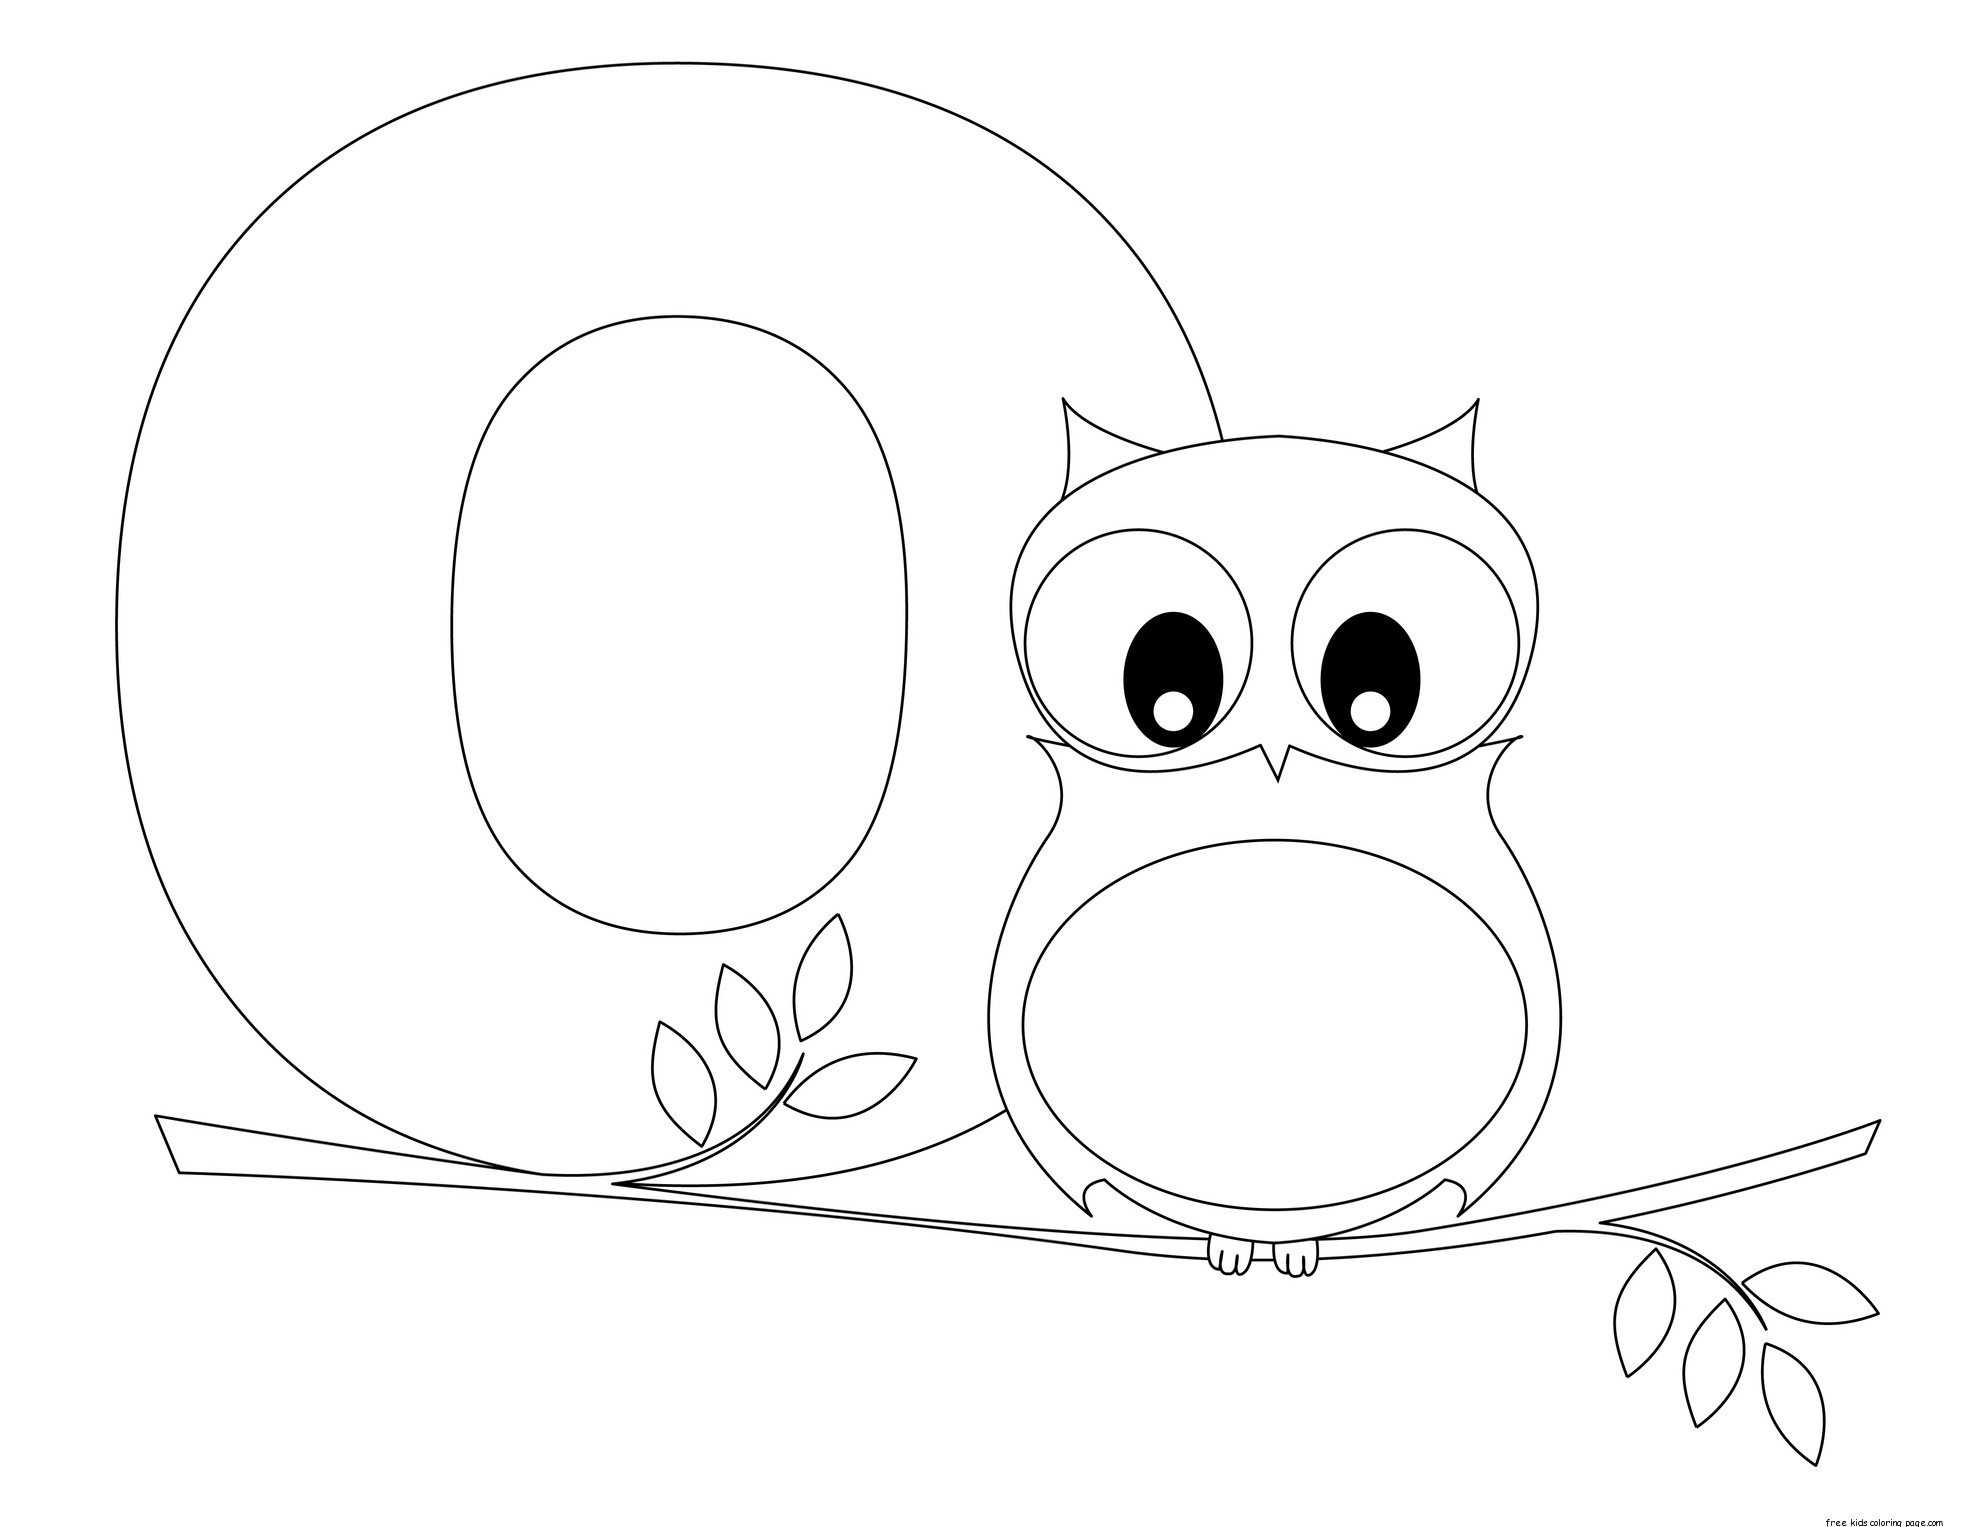 Printable Alphabet Letter O Worksheet Letter O Is For Owlfree Printable Coloring Pages For Kids